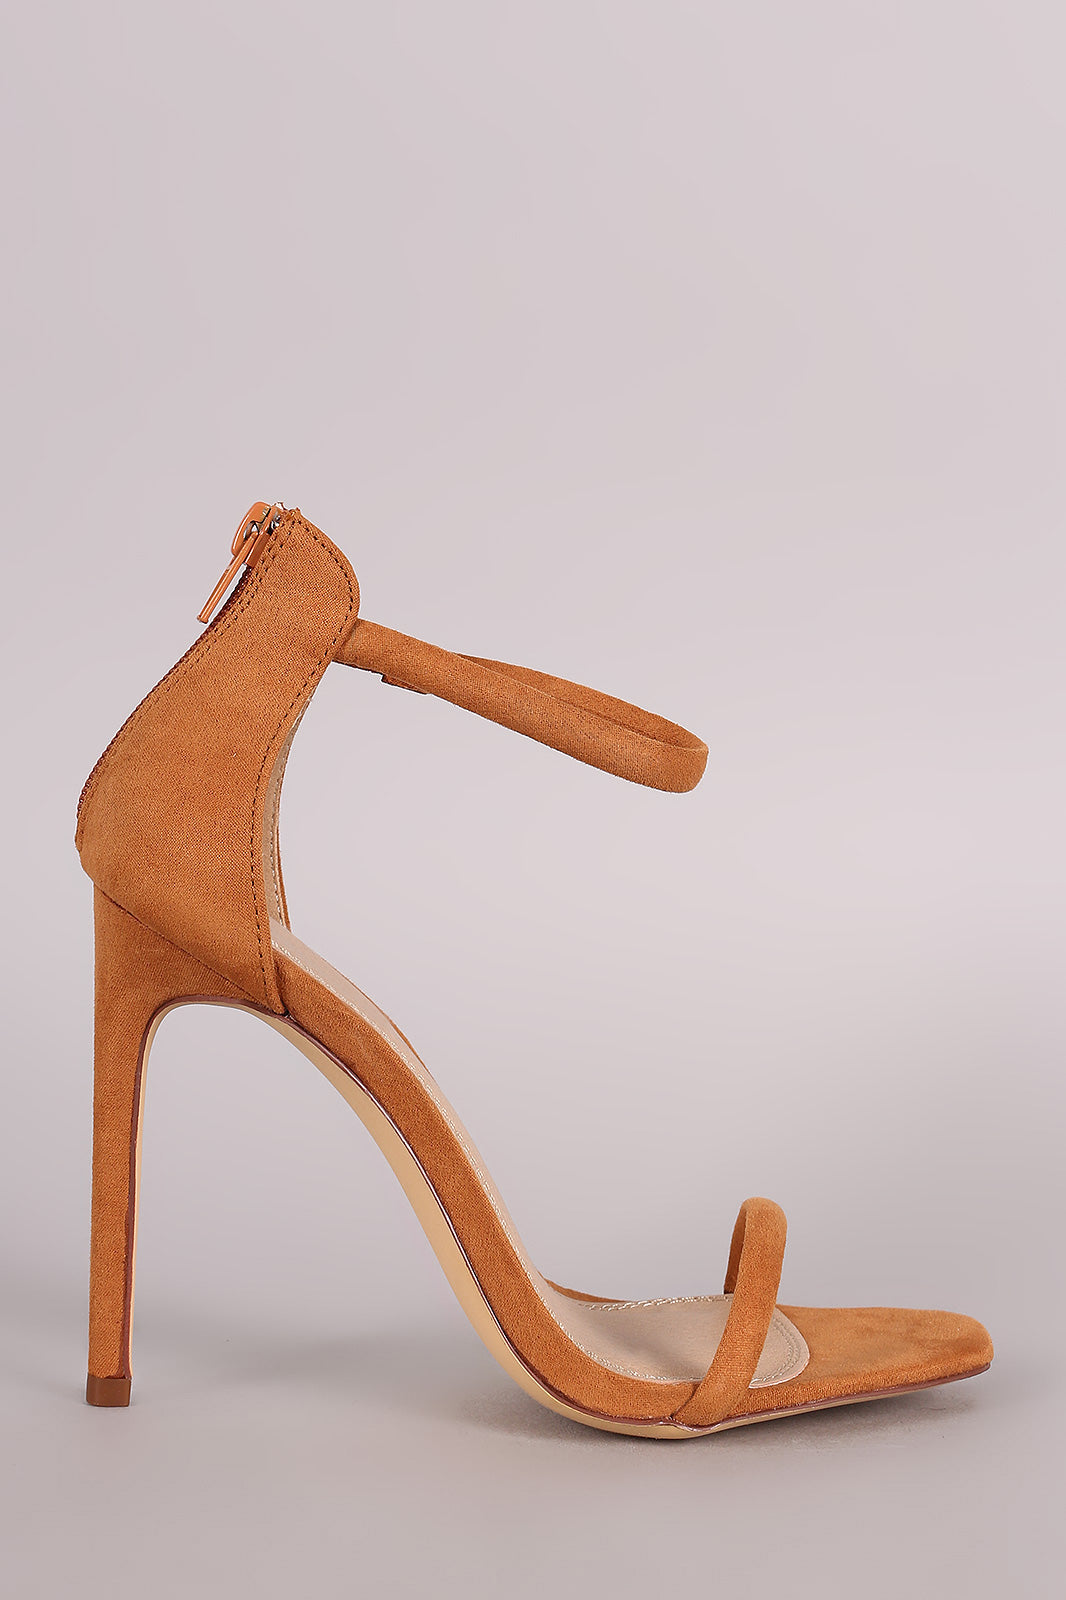 Liliana Suede Double Strap Open Toe Stiletto Heel - Thick 'N' Curvy Shop - 3